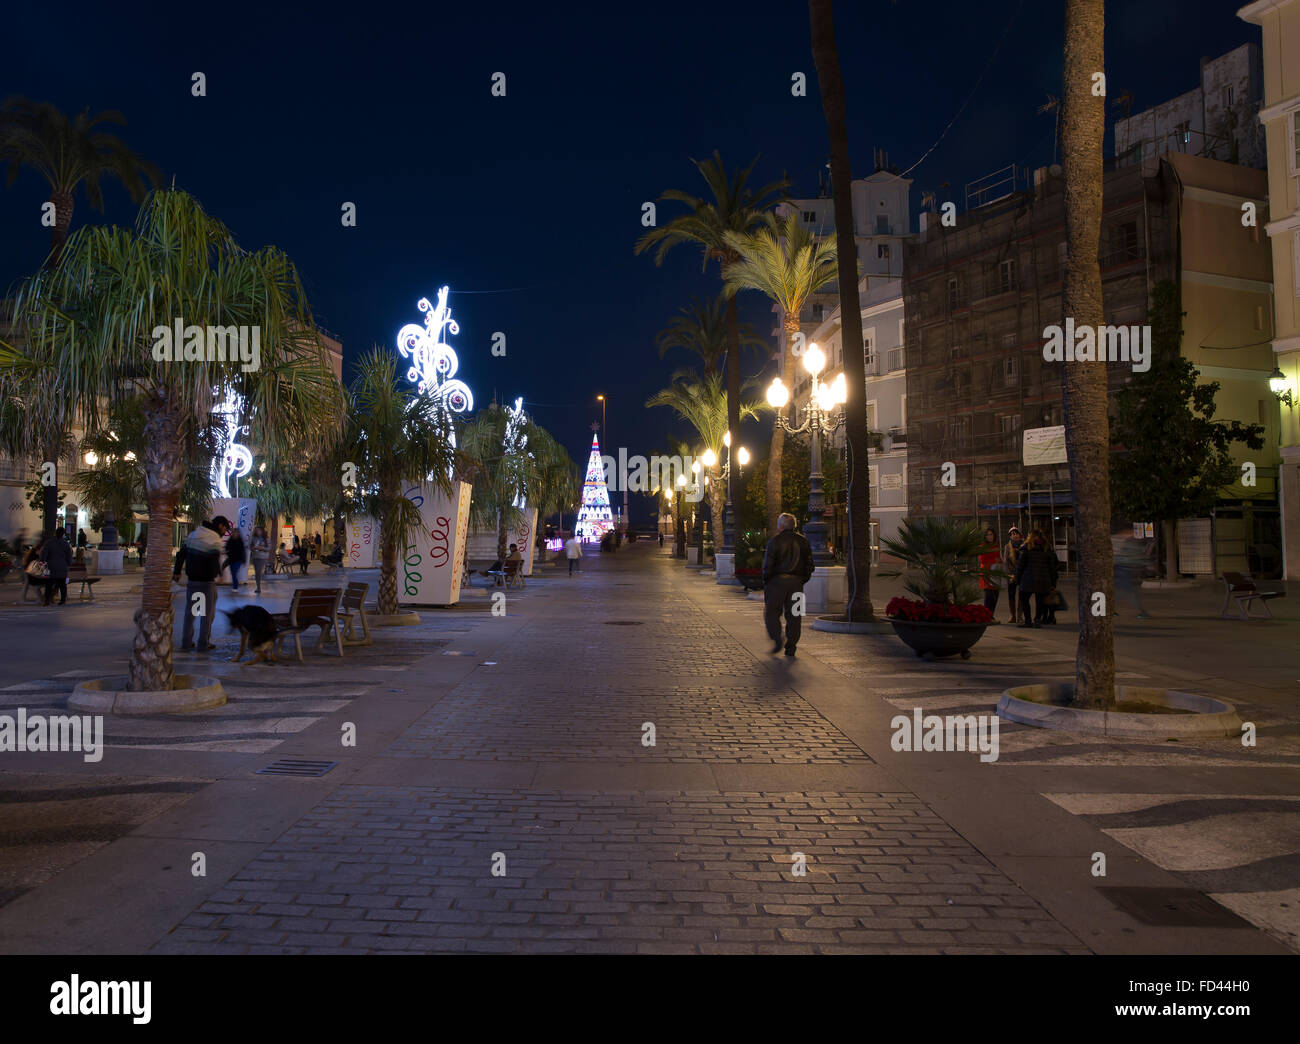 Decorations In Spain Christmas Decorations In A Square In Cadiz Spain Stock Photo